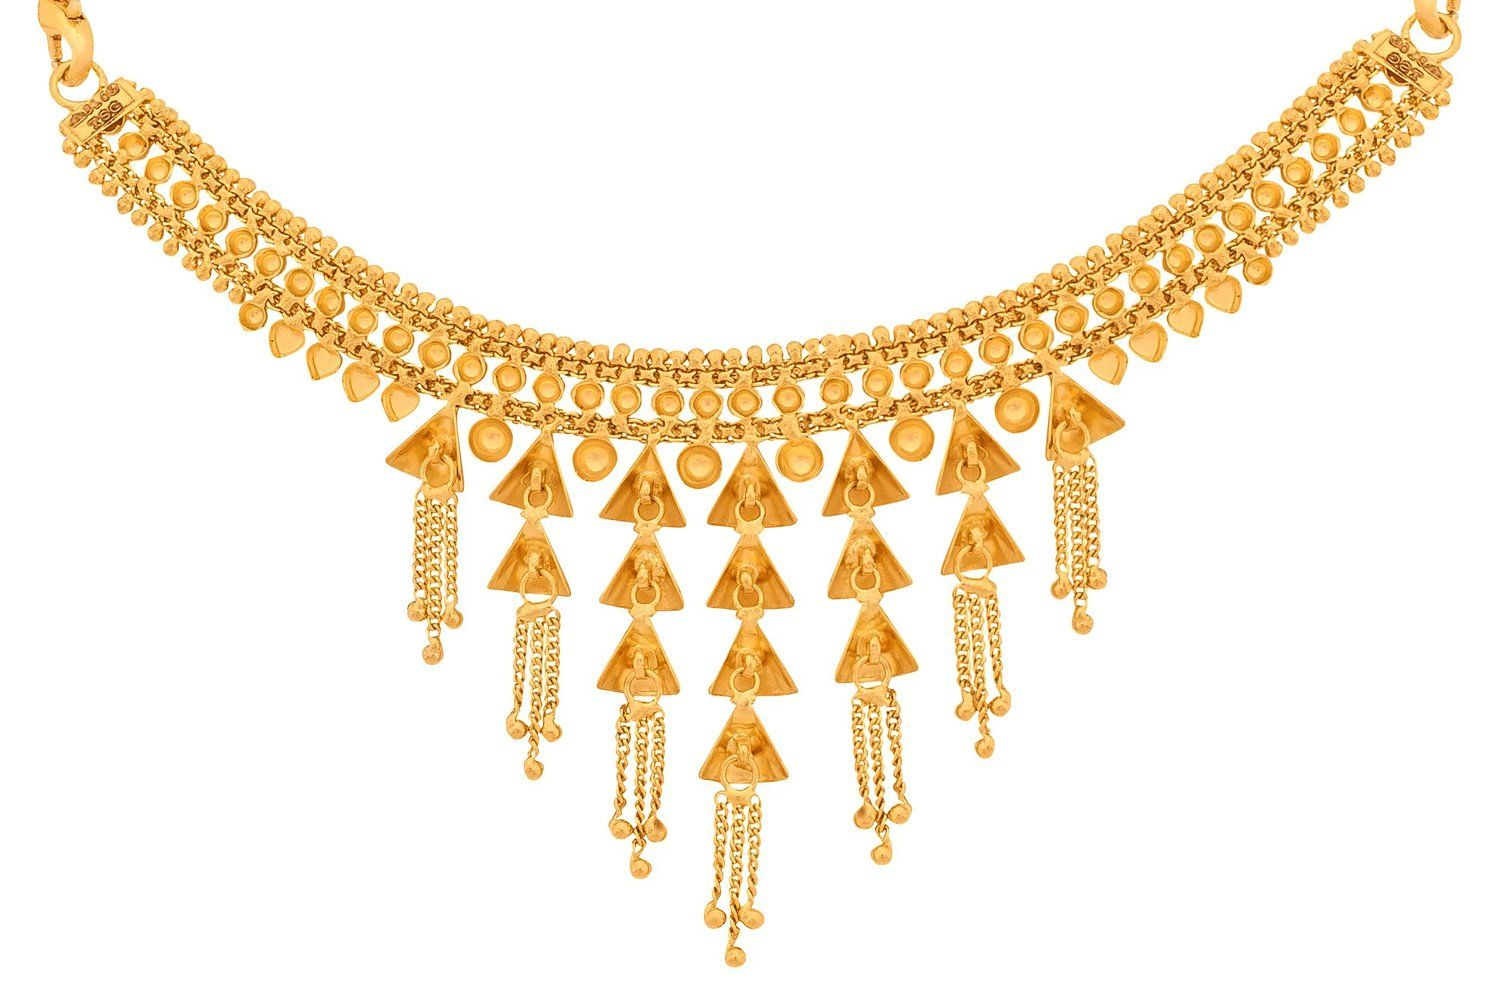 cc469b83c Buy Senco Gold 22k Yellow Gold Choker Necklace Online at Low Prices in India